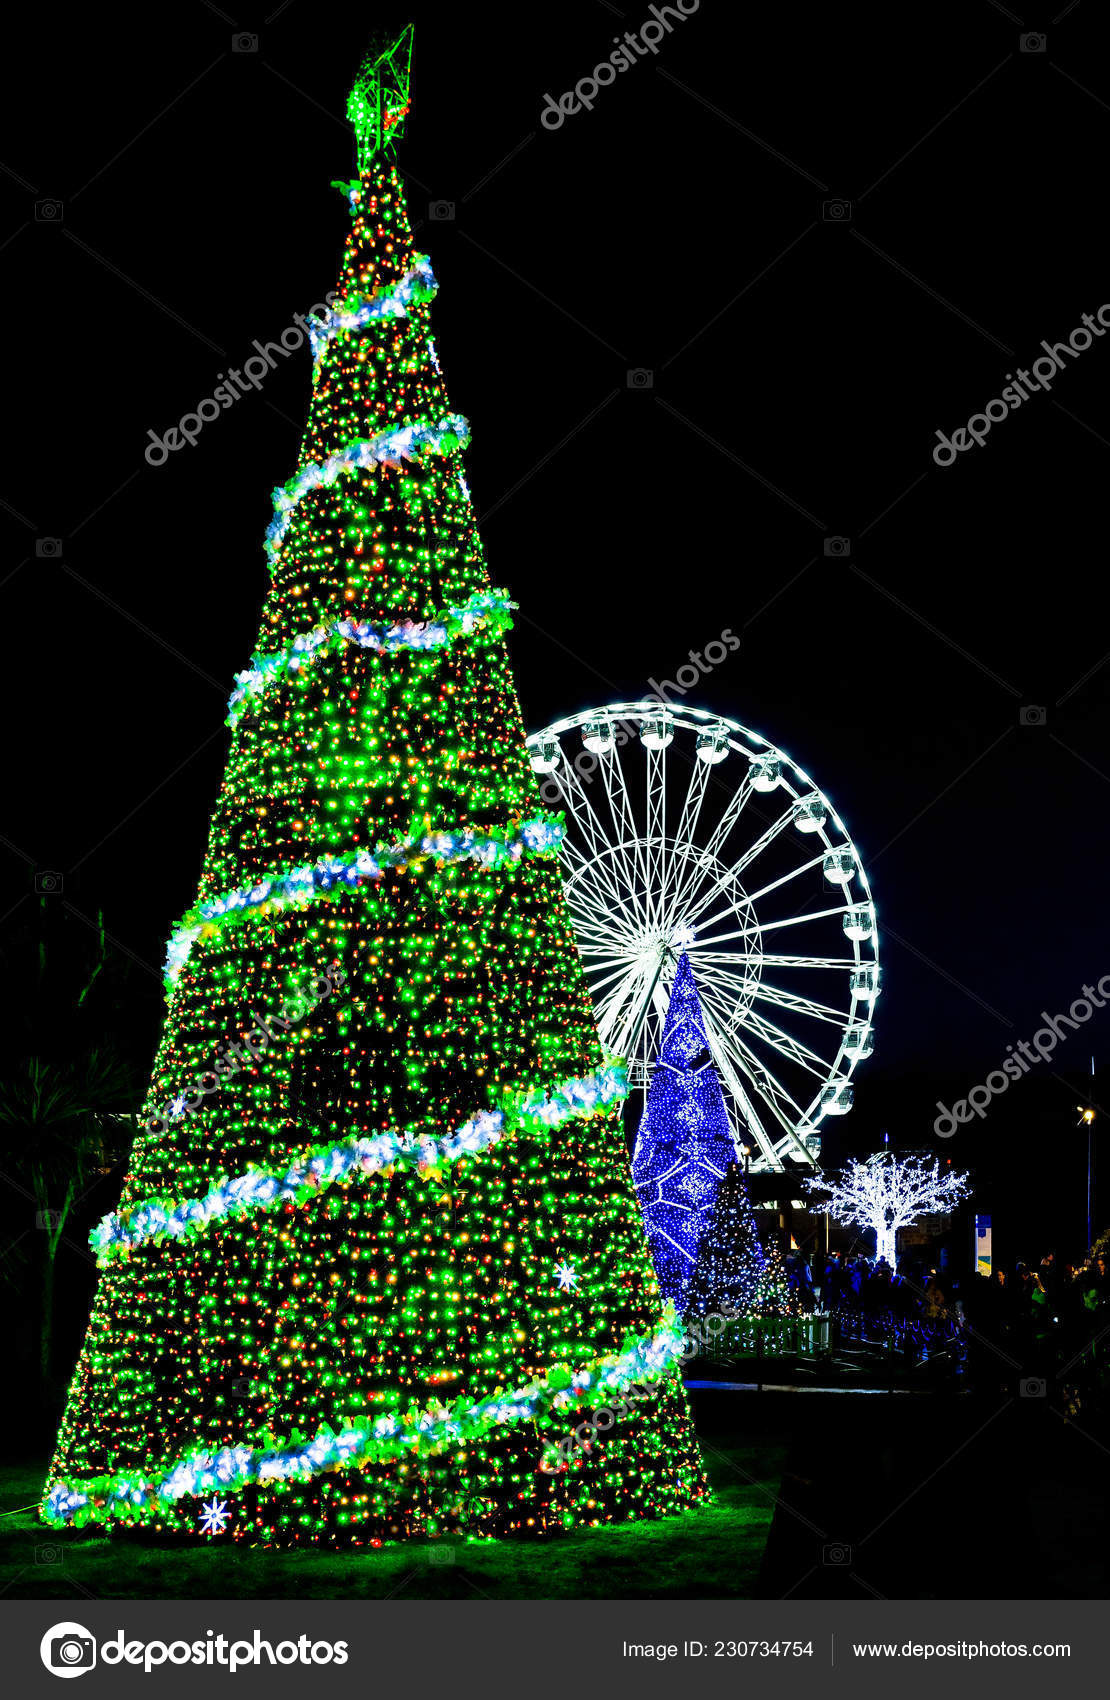 Outdoor Light Up Christmas Tree.Huge Outdoor Illuminated Christmas Tree Ferris Wheel